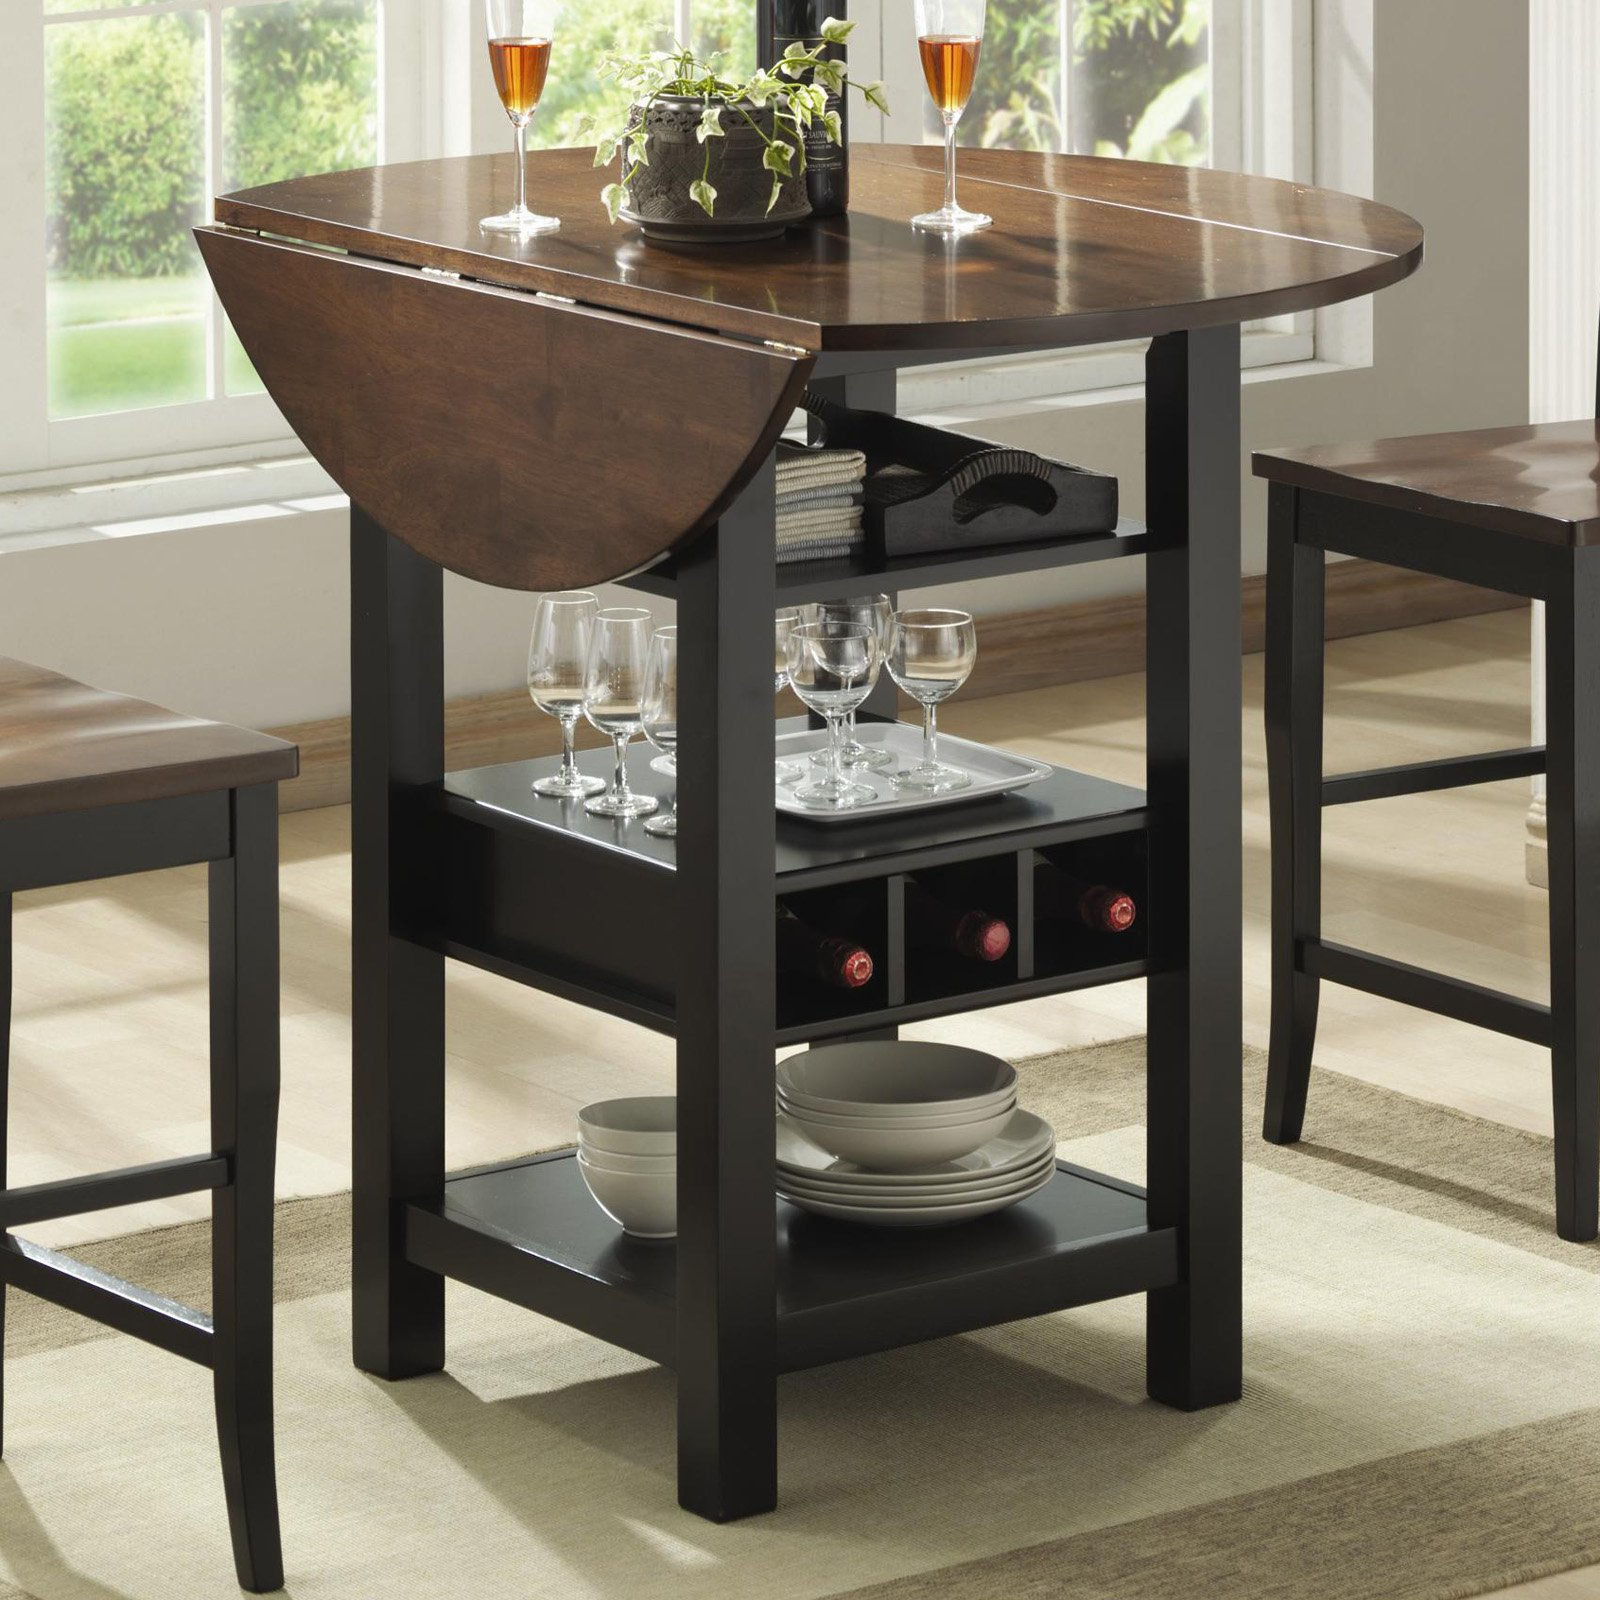 Exceptionnel Ridgewood Counter Height Drop Leaf Dining Table With Storage